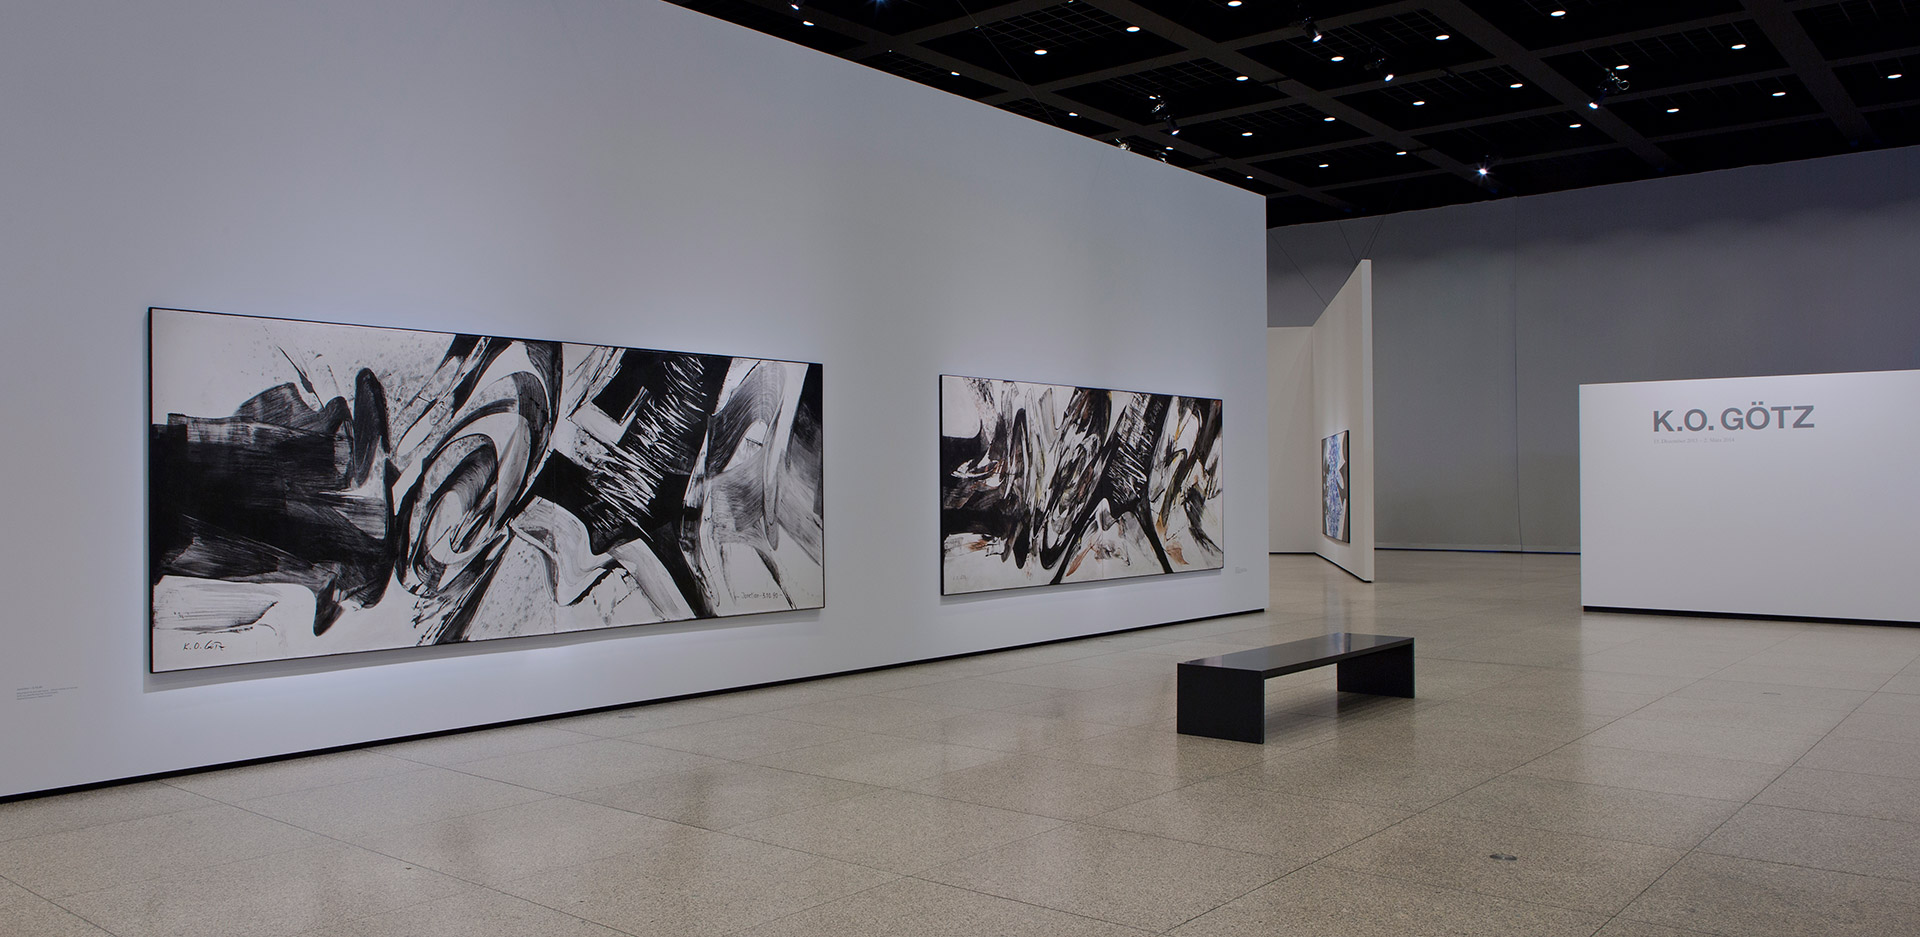 On view is: Exhibition view of the retrospective at the Neue Nationalgalerie 2013/2014